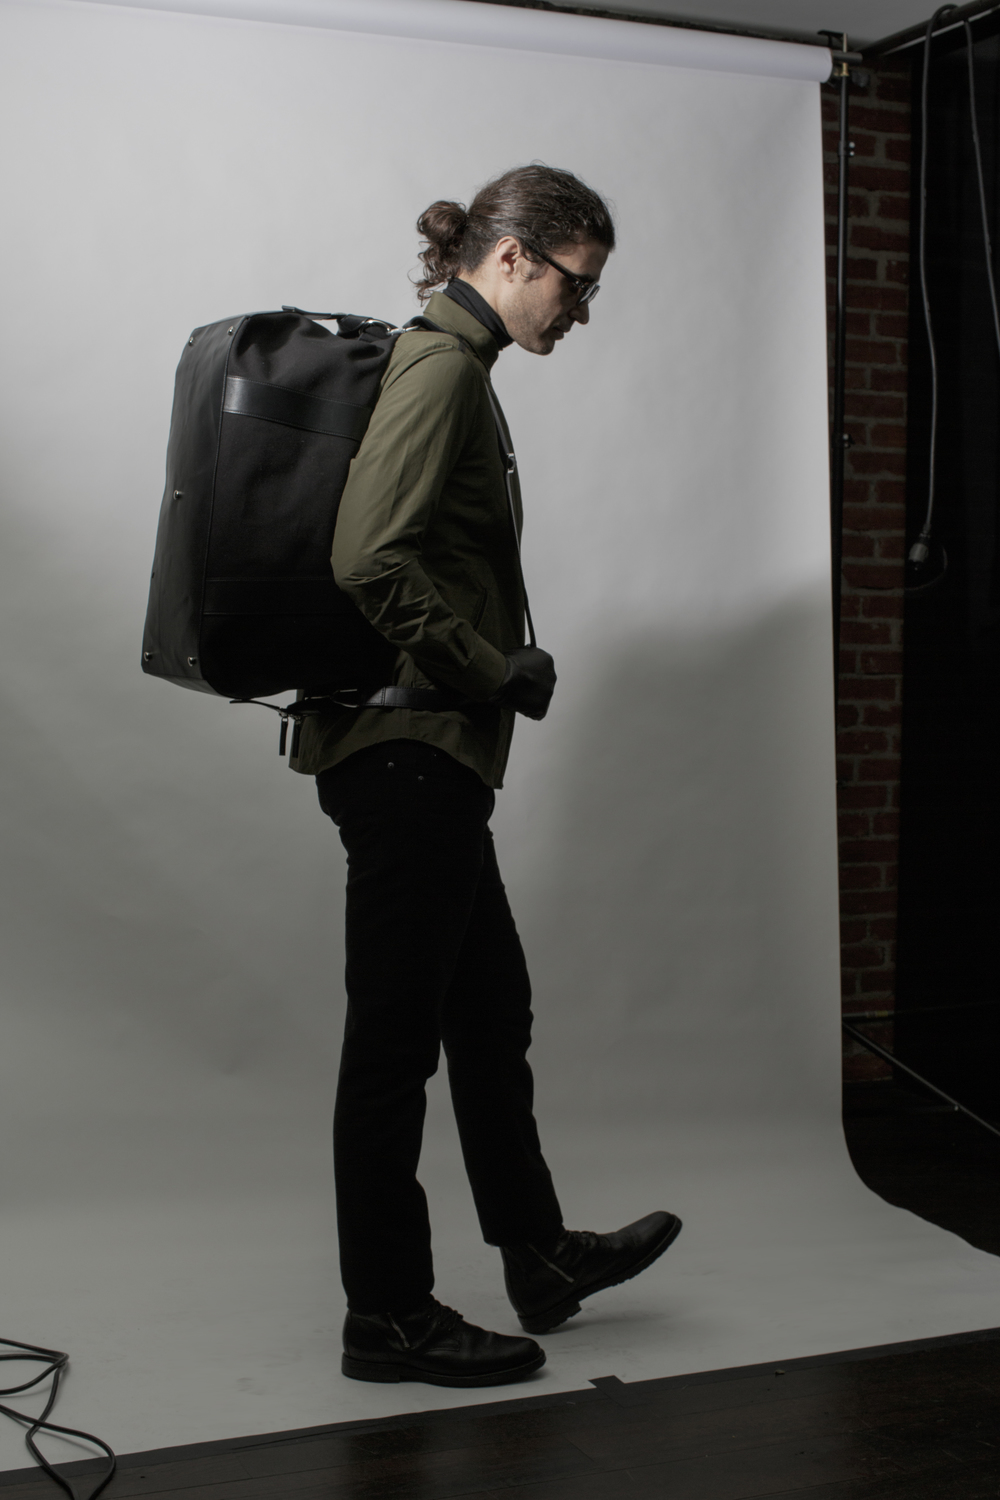 Sullivan Jacket, Muir Travel Bag